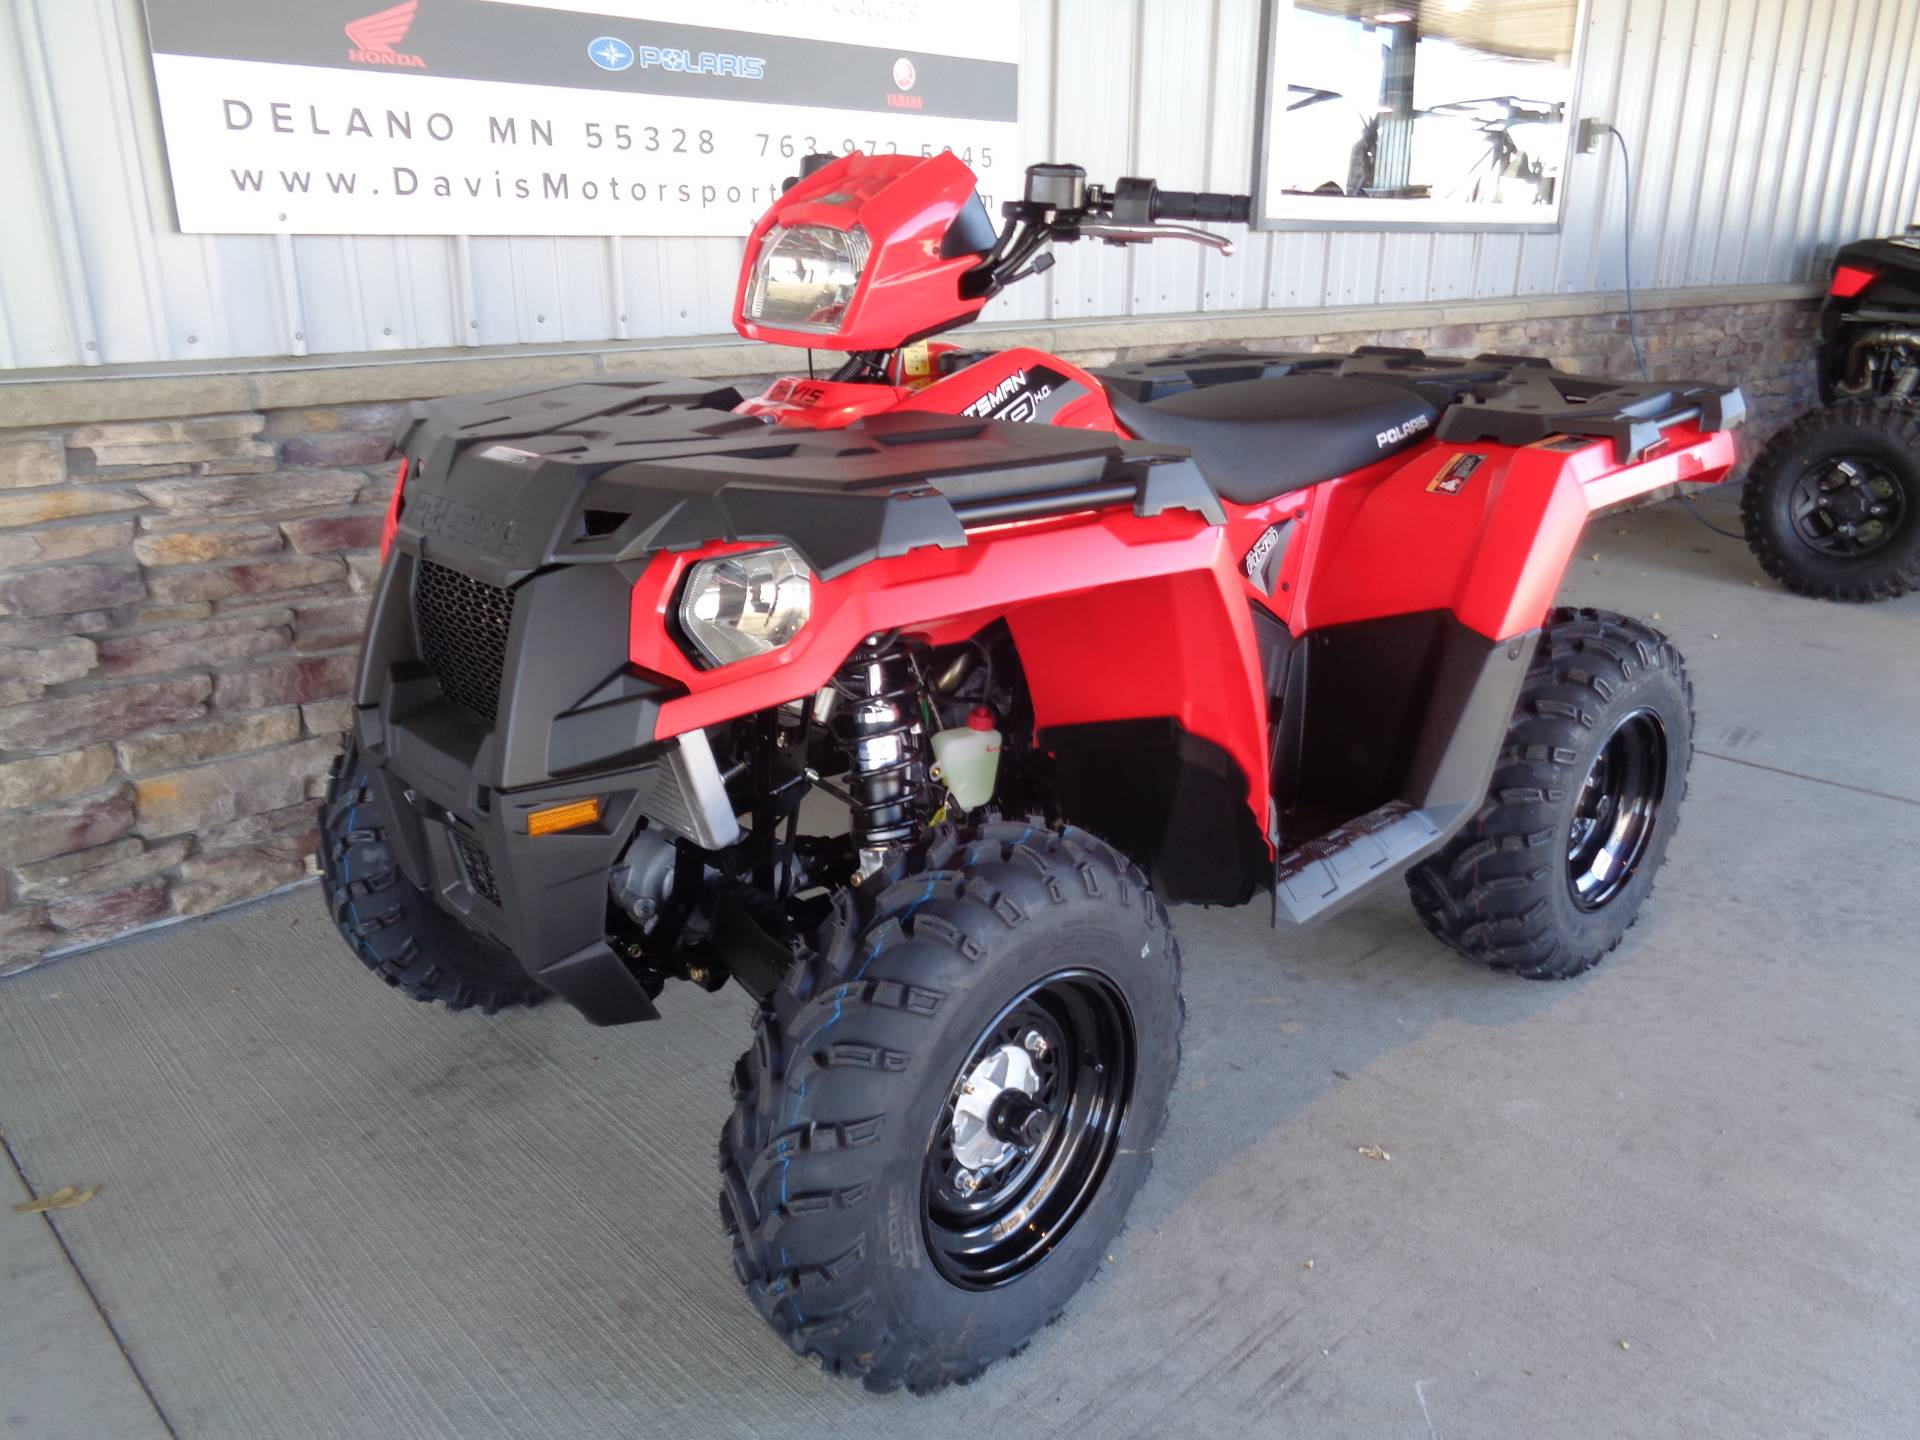 2019 Polaris Sportsman 450 H.O. EPS in Delano, Minnesota - Photo 4